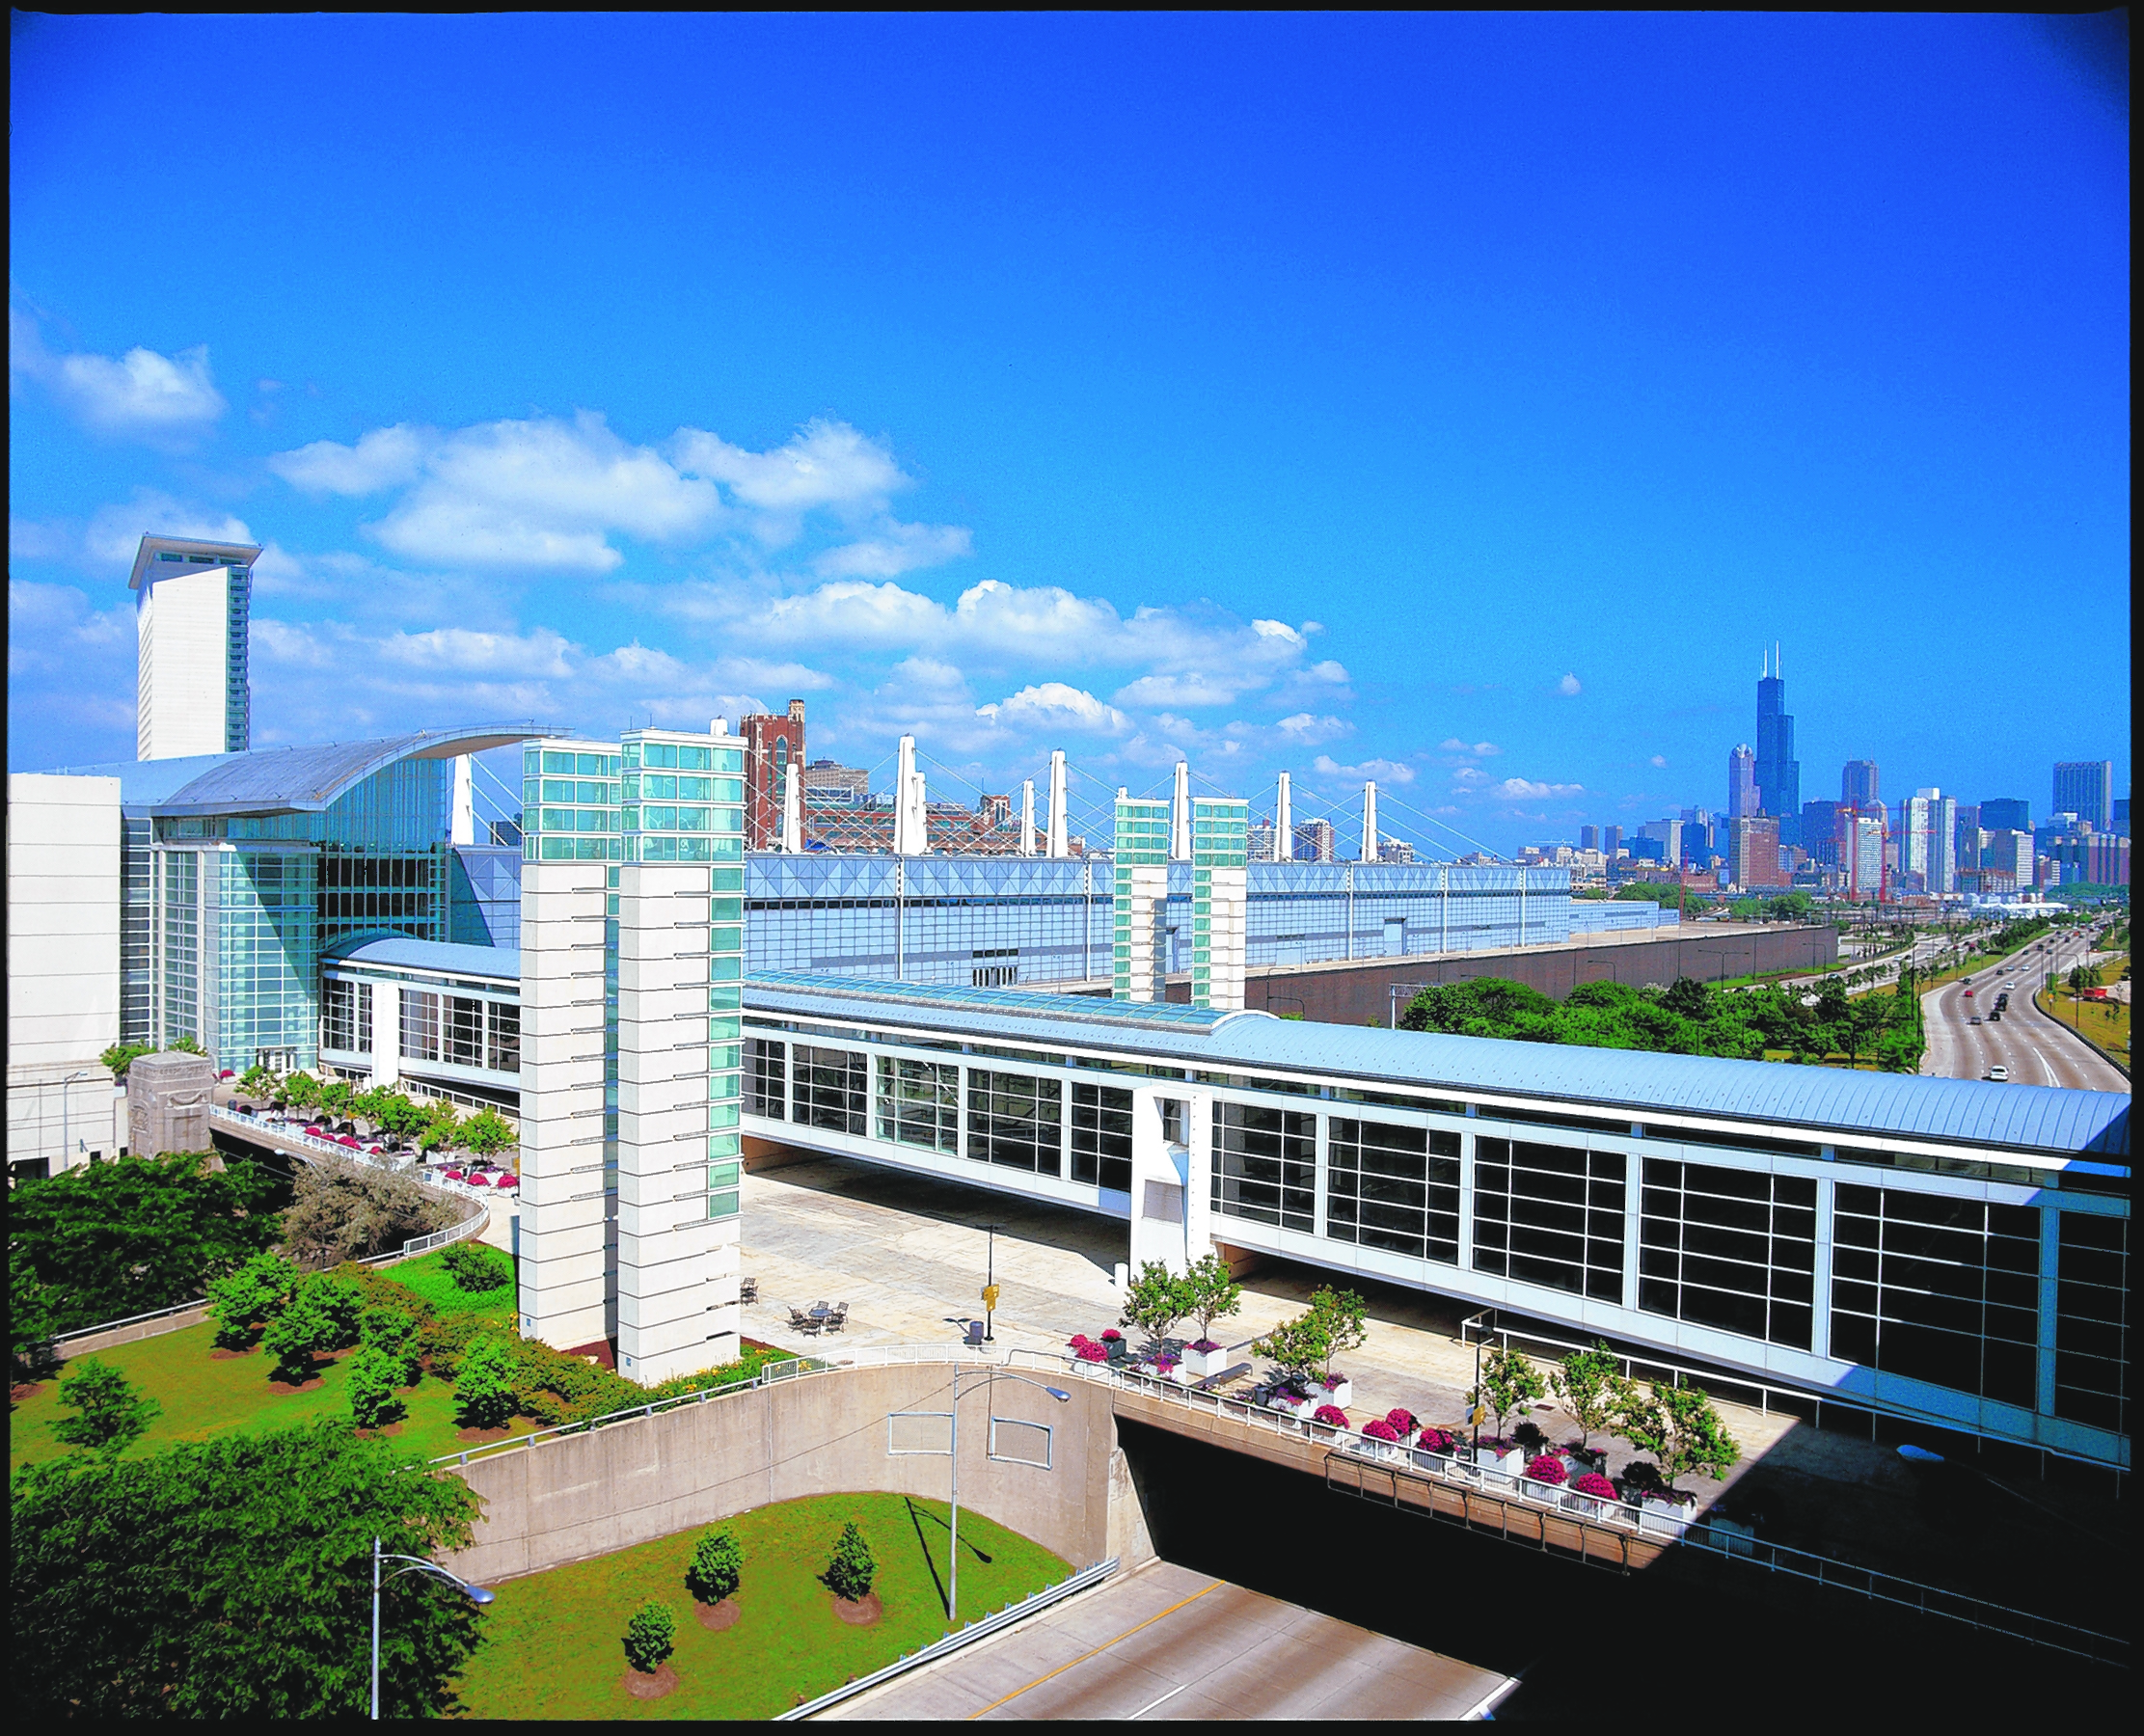 Chicago's McCormick Place convention center.